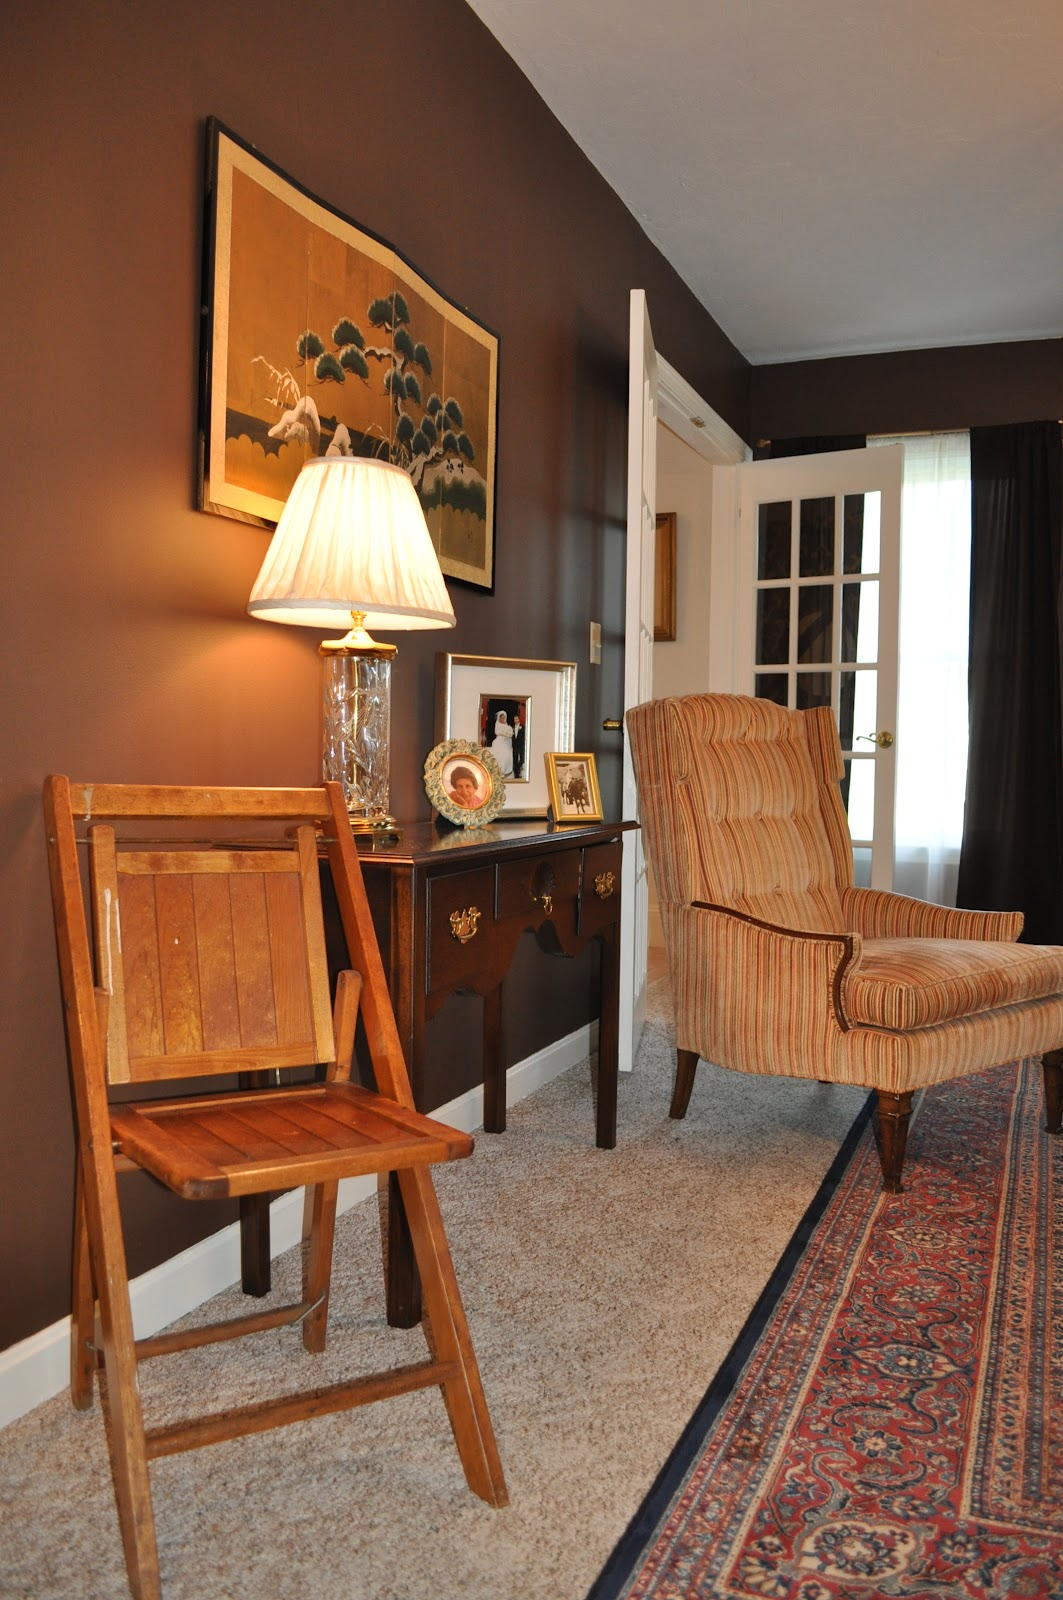 Brown gold and orange living room - A Few Family Pictures Personalize The Space With Different Frames Of Gold